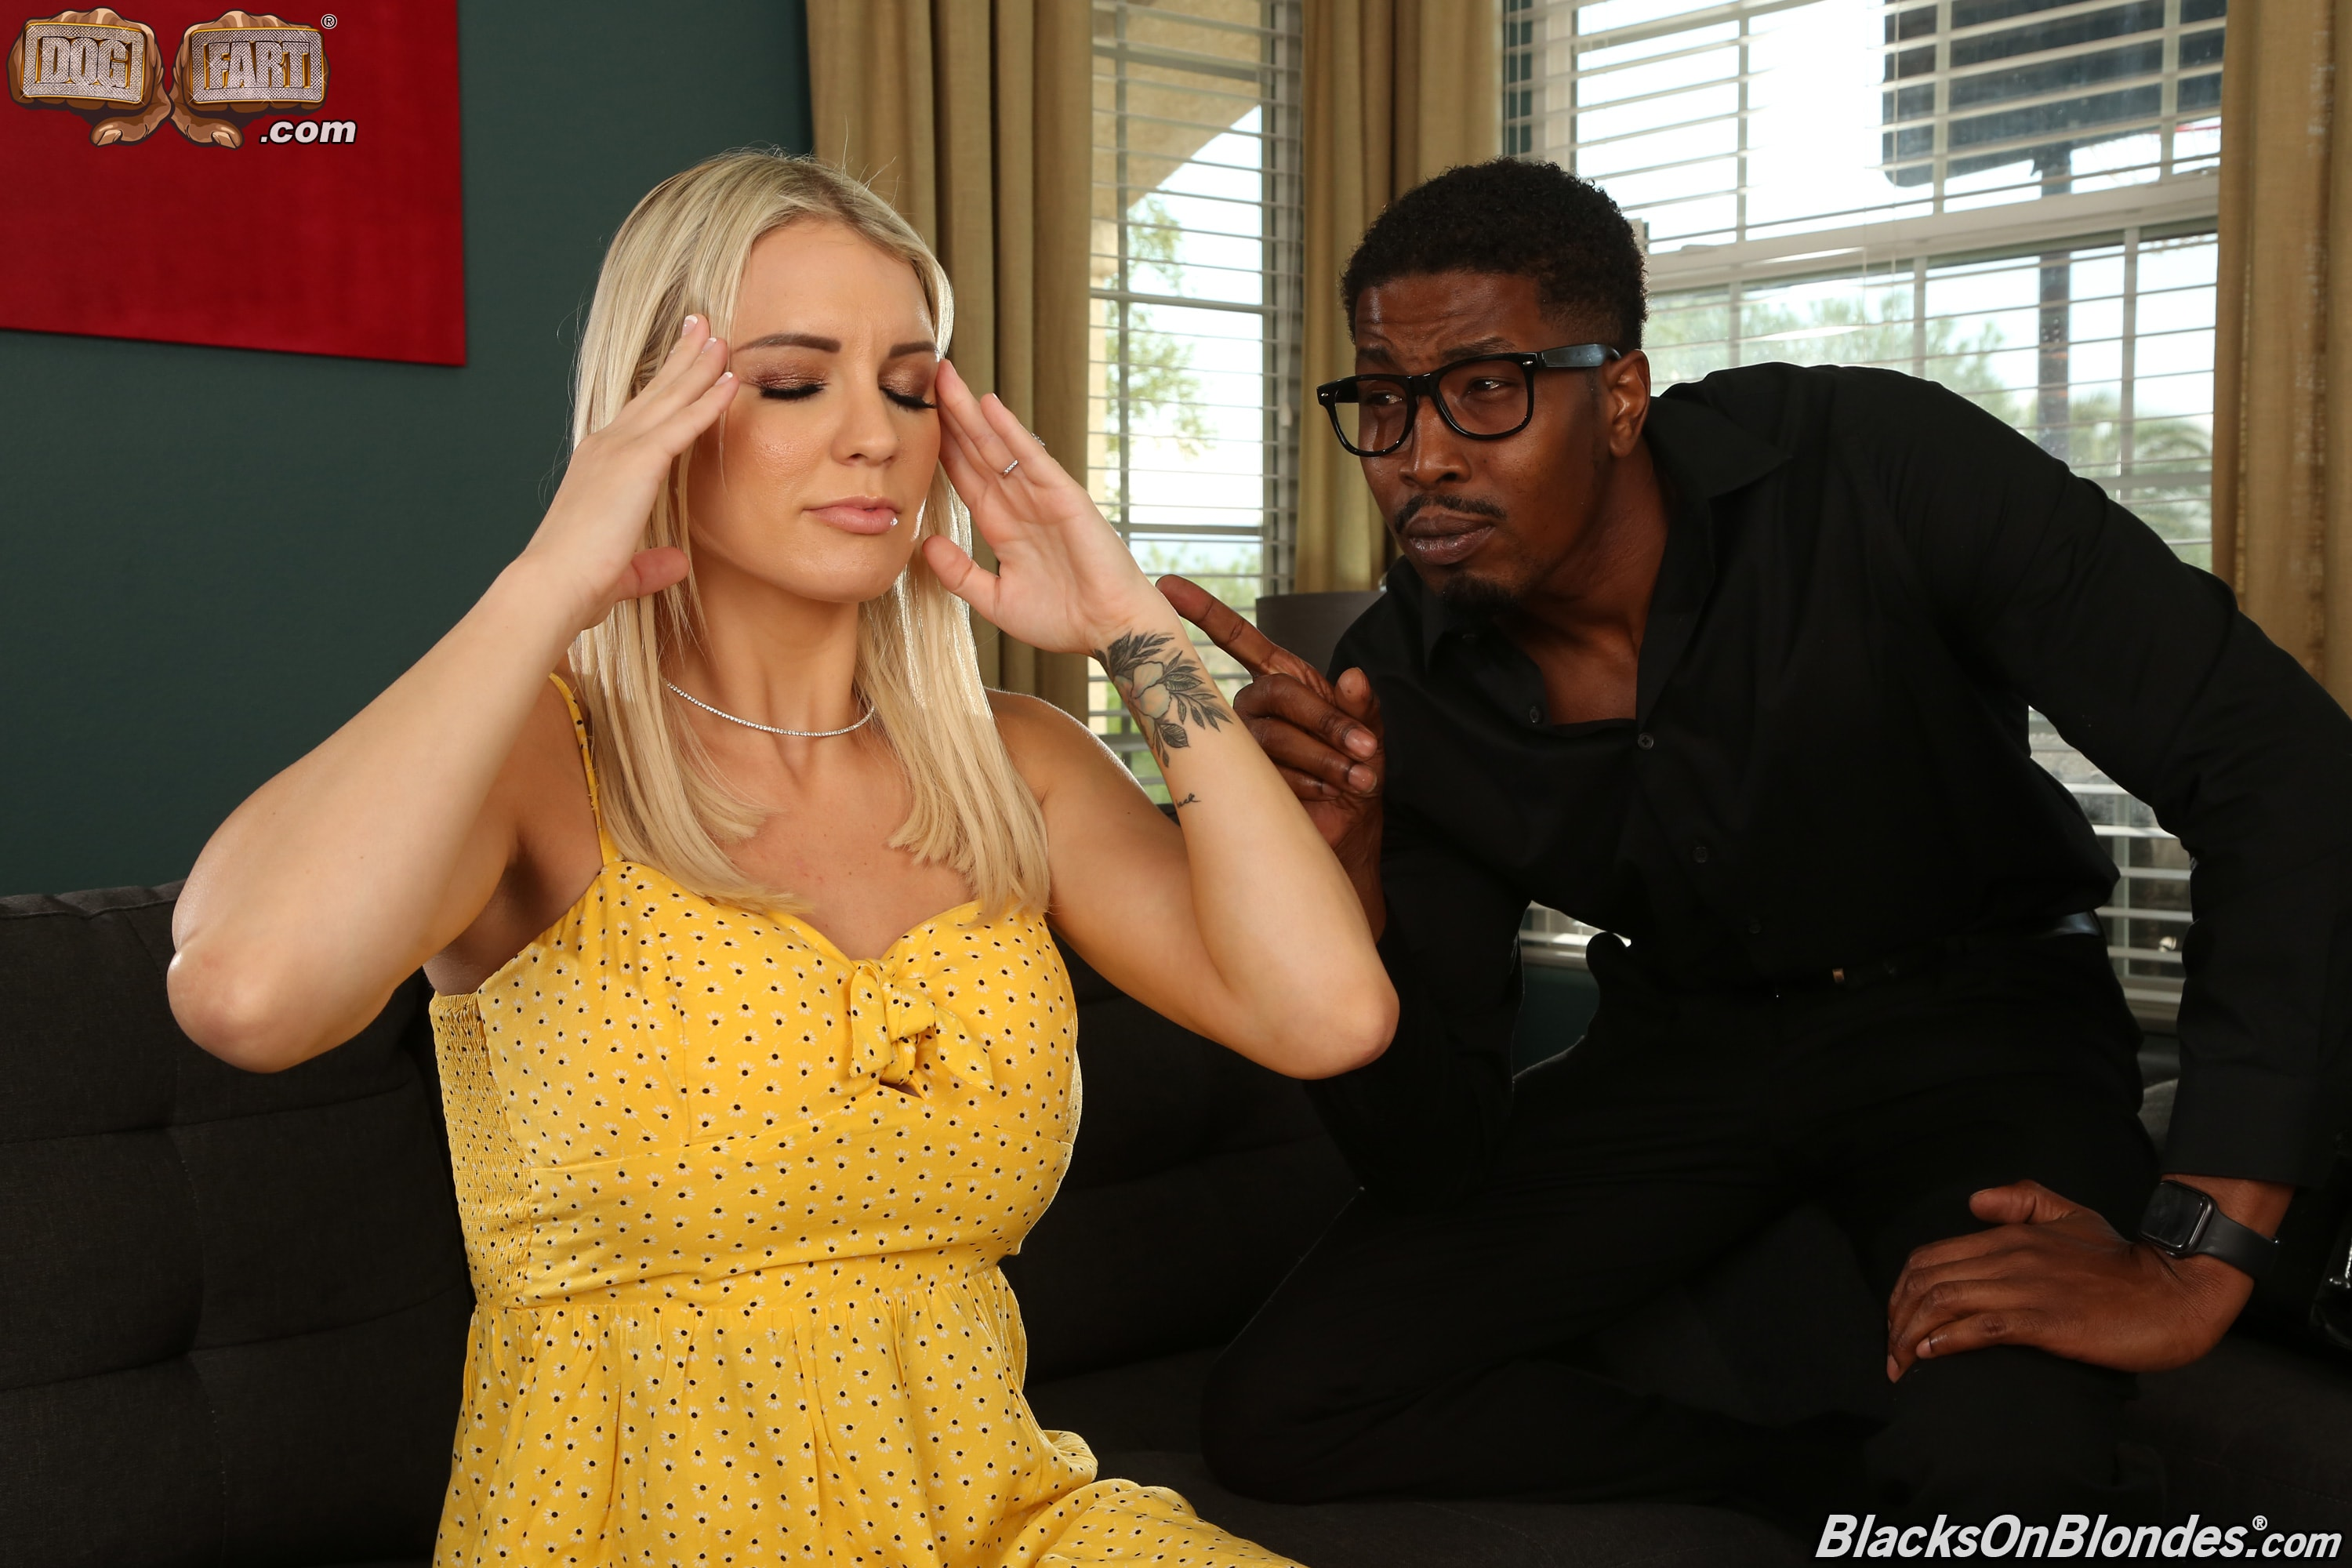 Dogfart '- Blacks On Blondes - Scene 3' starring Kenzie Taylor (Photo 2)